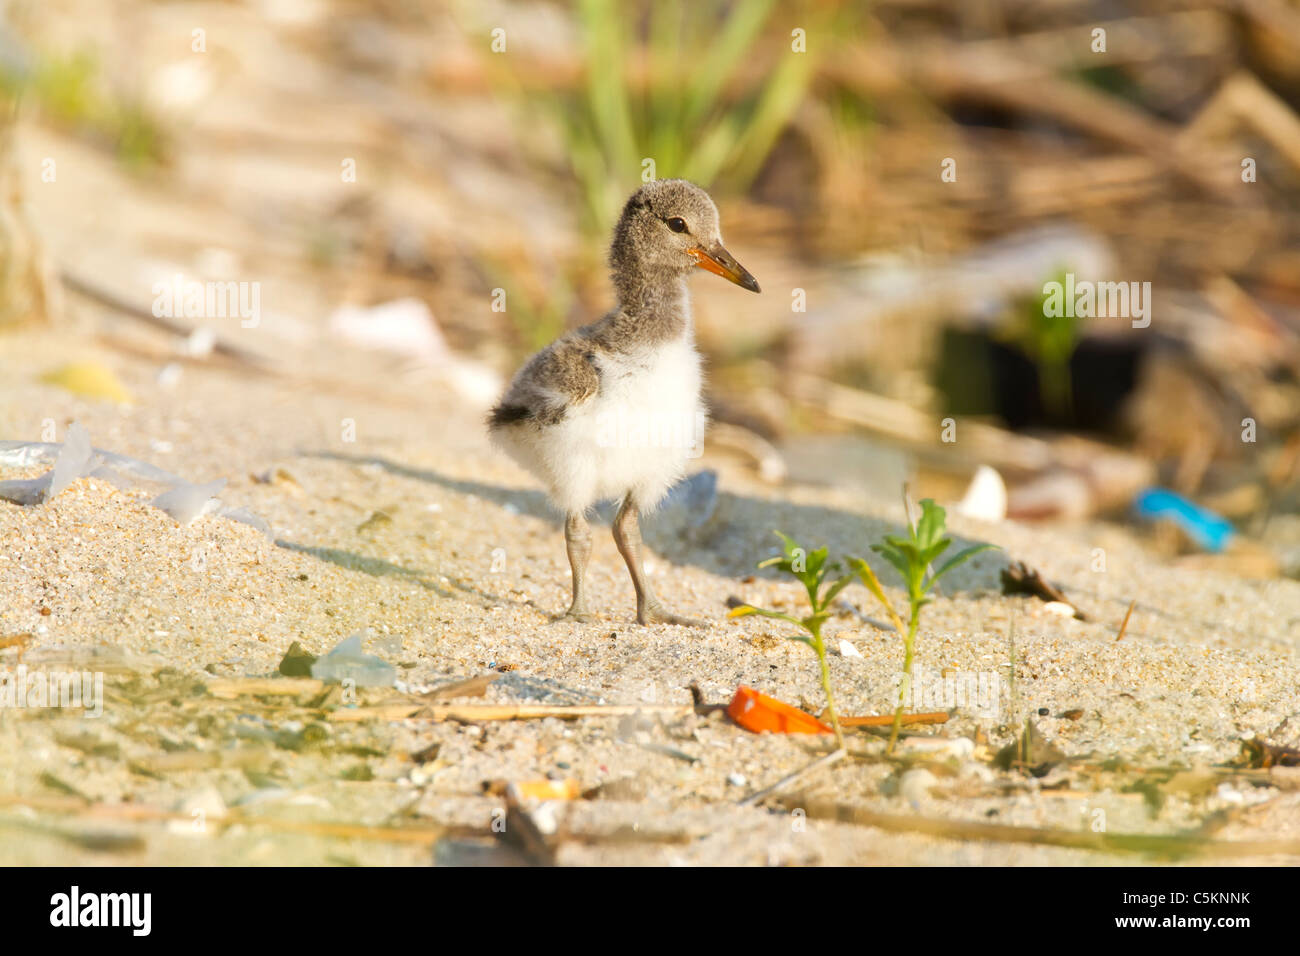 American Oystercatcher chick posing on the polluted beach - Stock Image